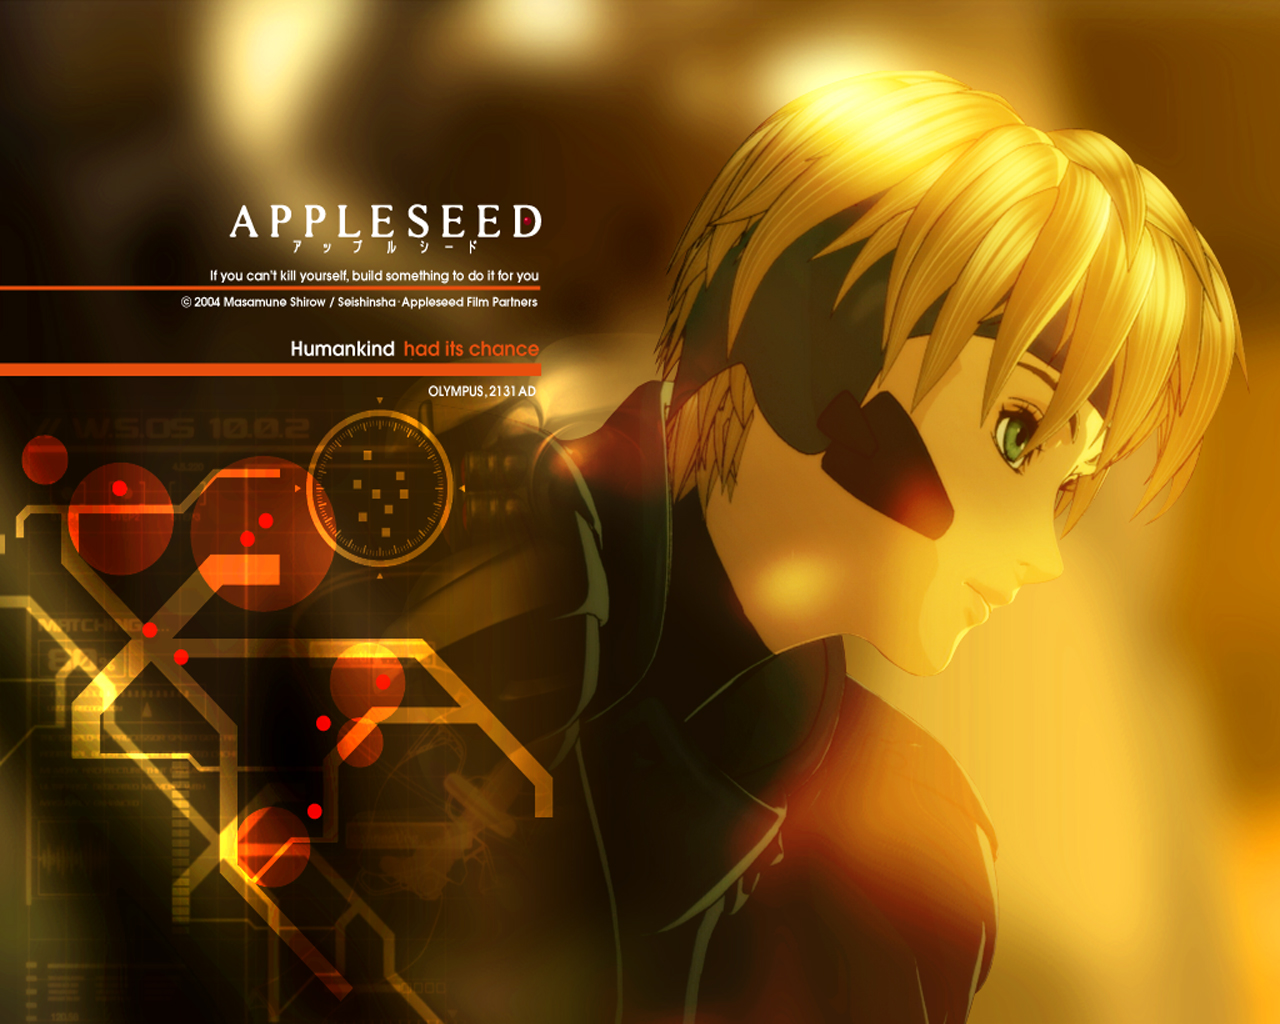 appleseed_movie_05wp01.jpg